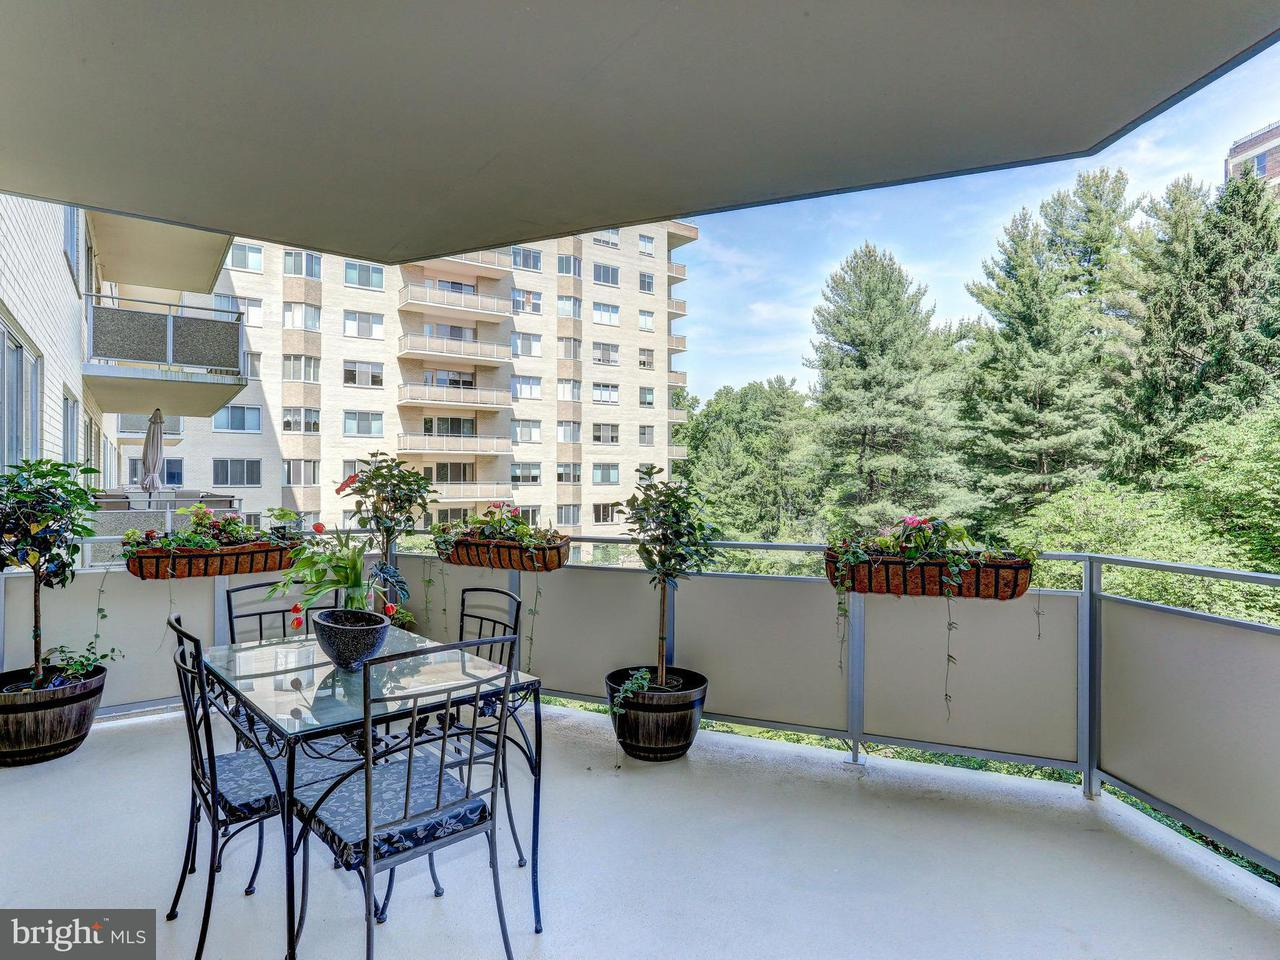 Additional photo for property listing at 2801 NEW MEXICO AVE NW #715 2801 NEW MEXICO AVE NW #715 Washington, Distrito De Columbia 20007 Estados Unidos